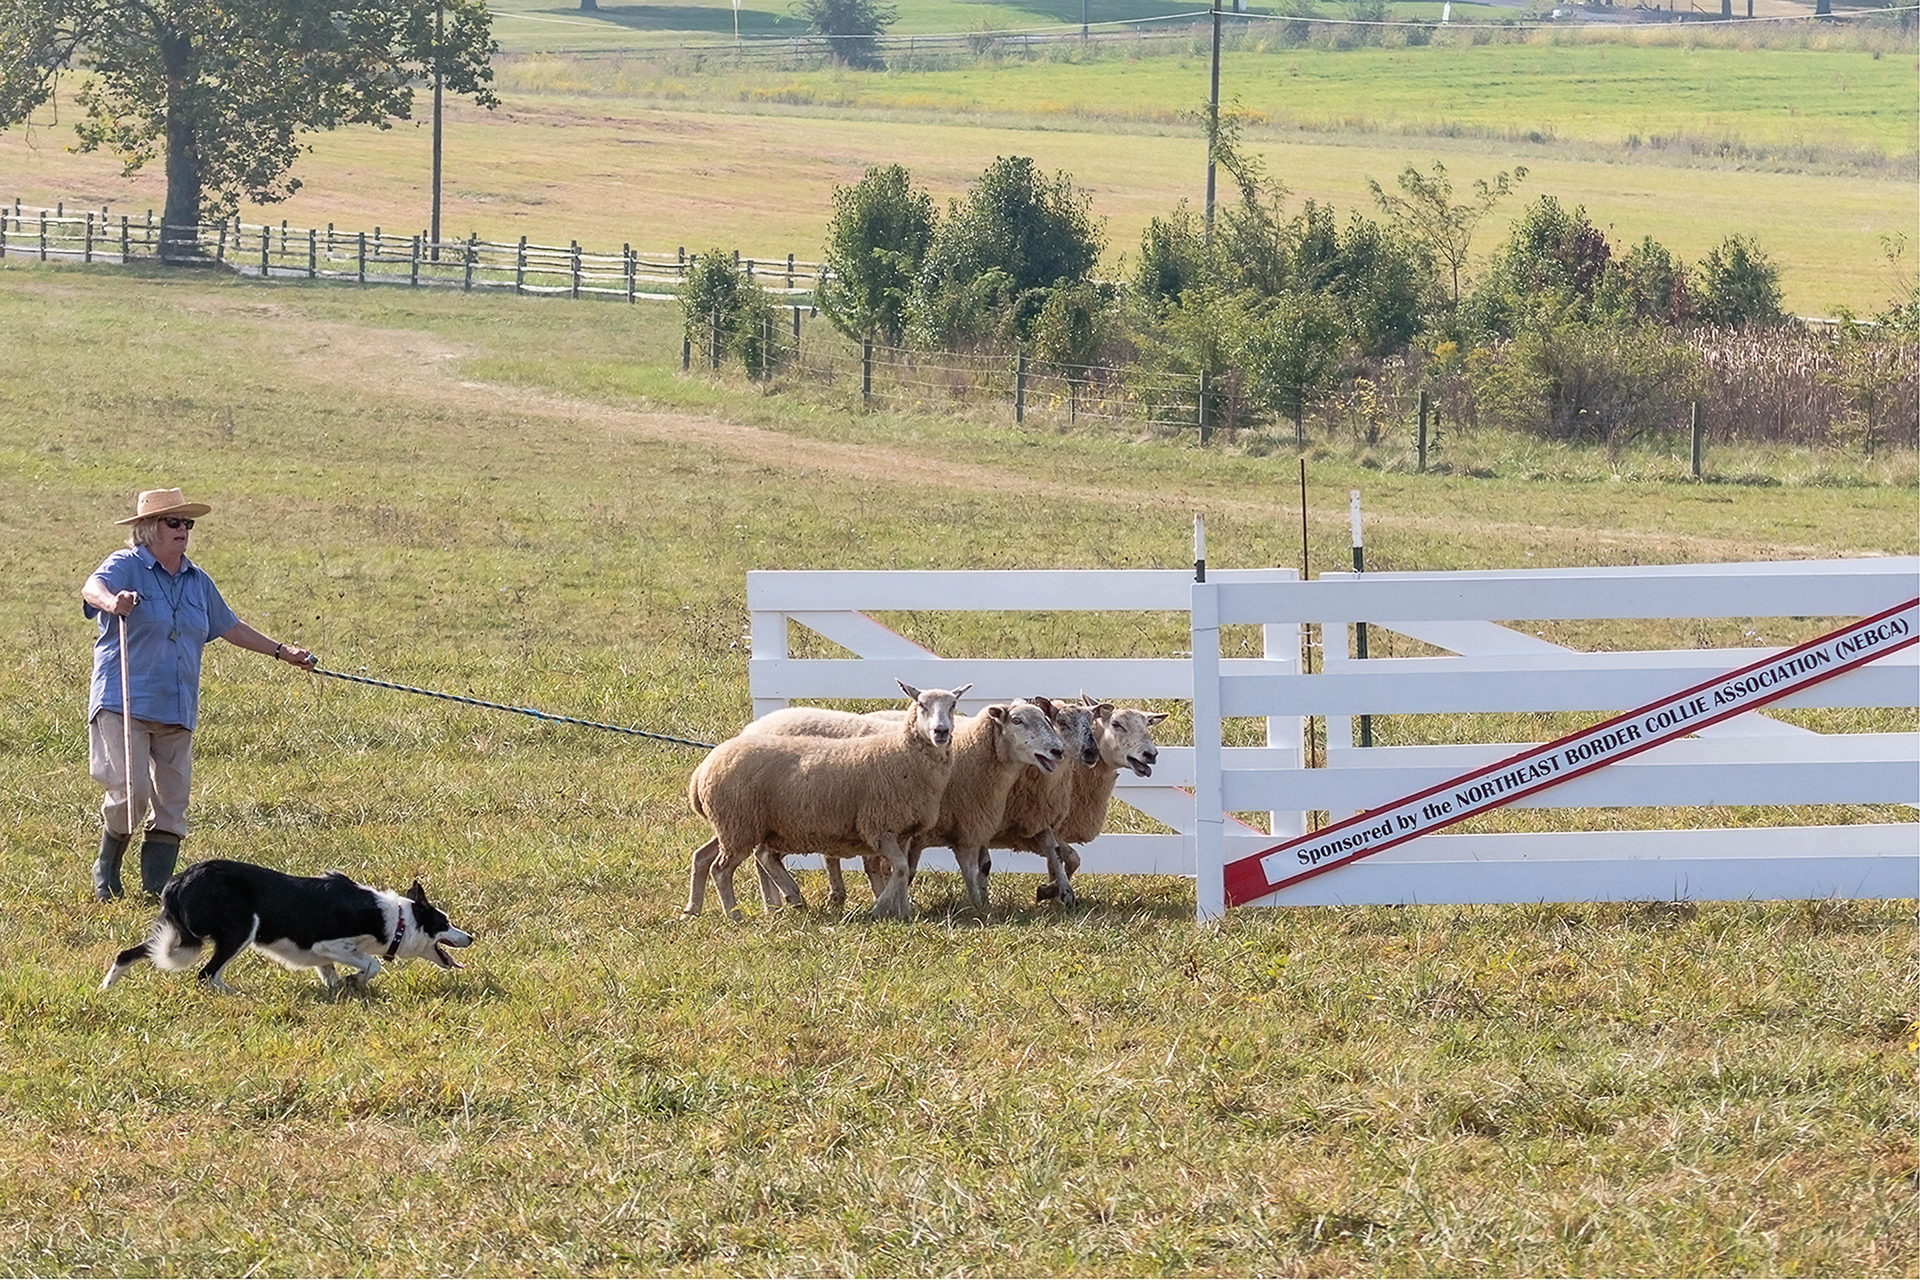 'Scott' in action at the 2017 USBCHA National Finals in Virginia, where he earned a place to compete with the top trialing dogs in North America. In the sheep dog trialing world, qualifying to compete with the top 150 dogs in North America is prestigious. Photo © Michelle Lawrence, All Rights Reserved